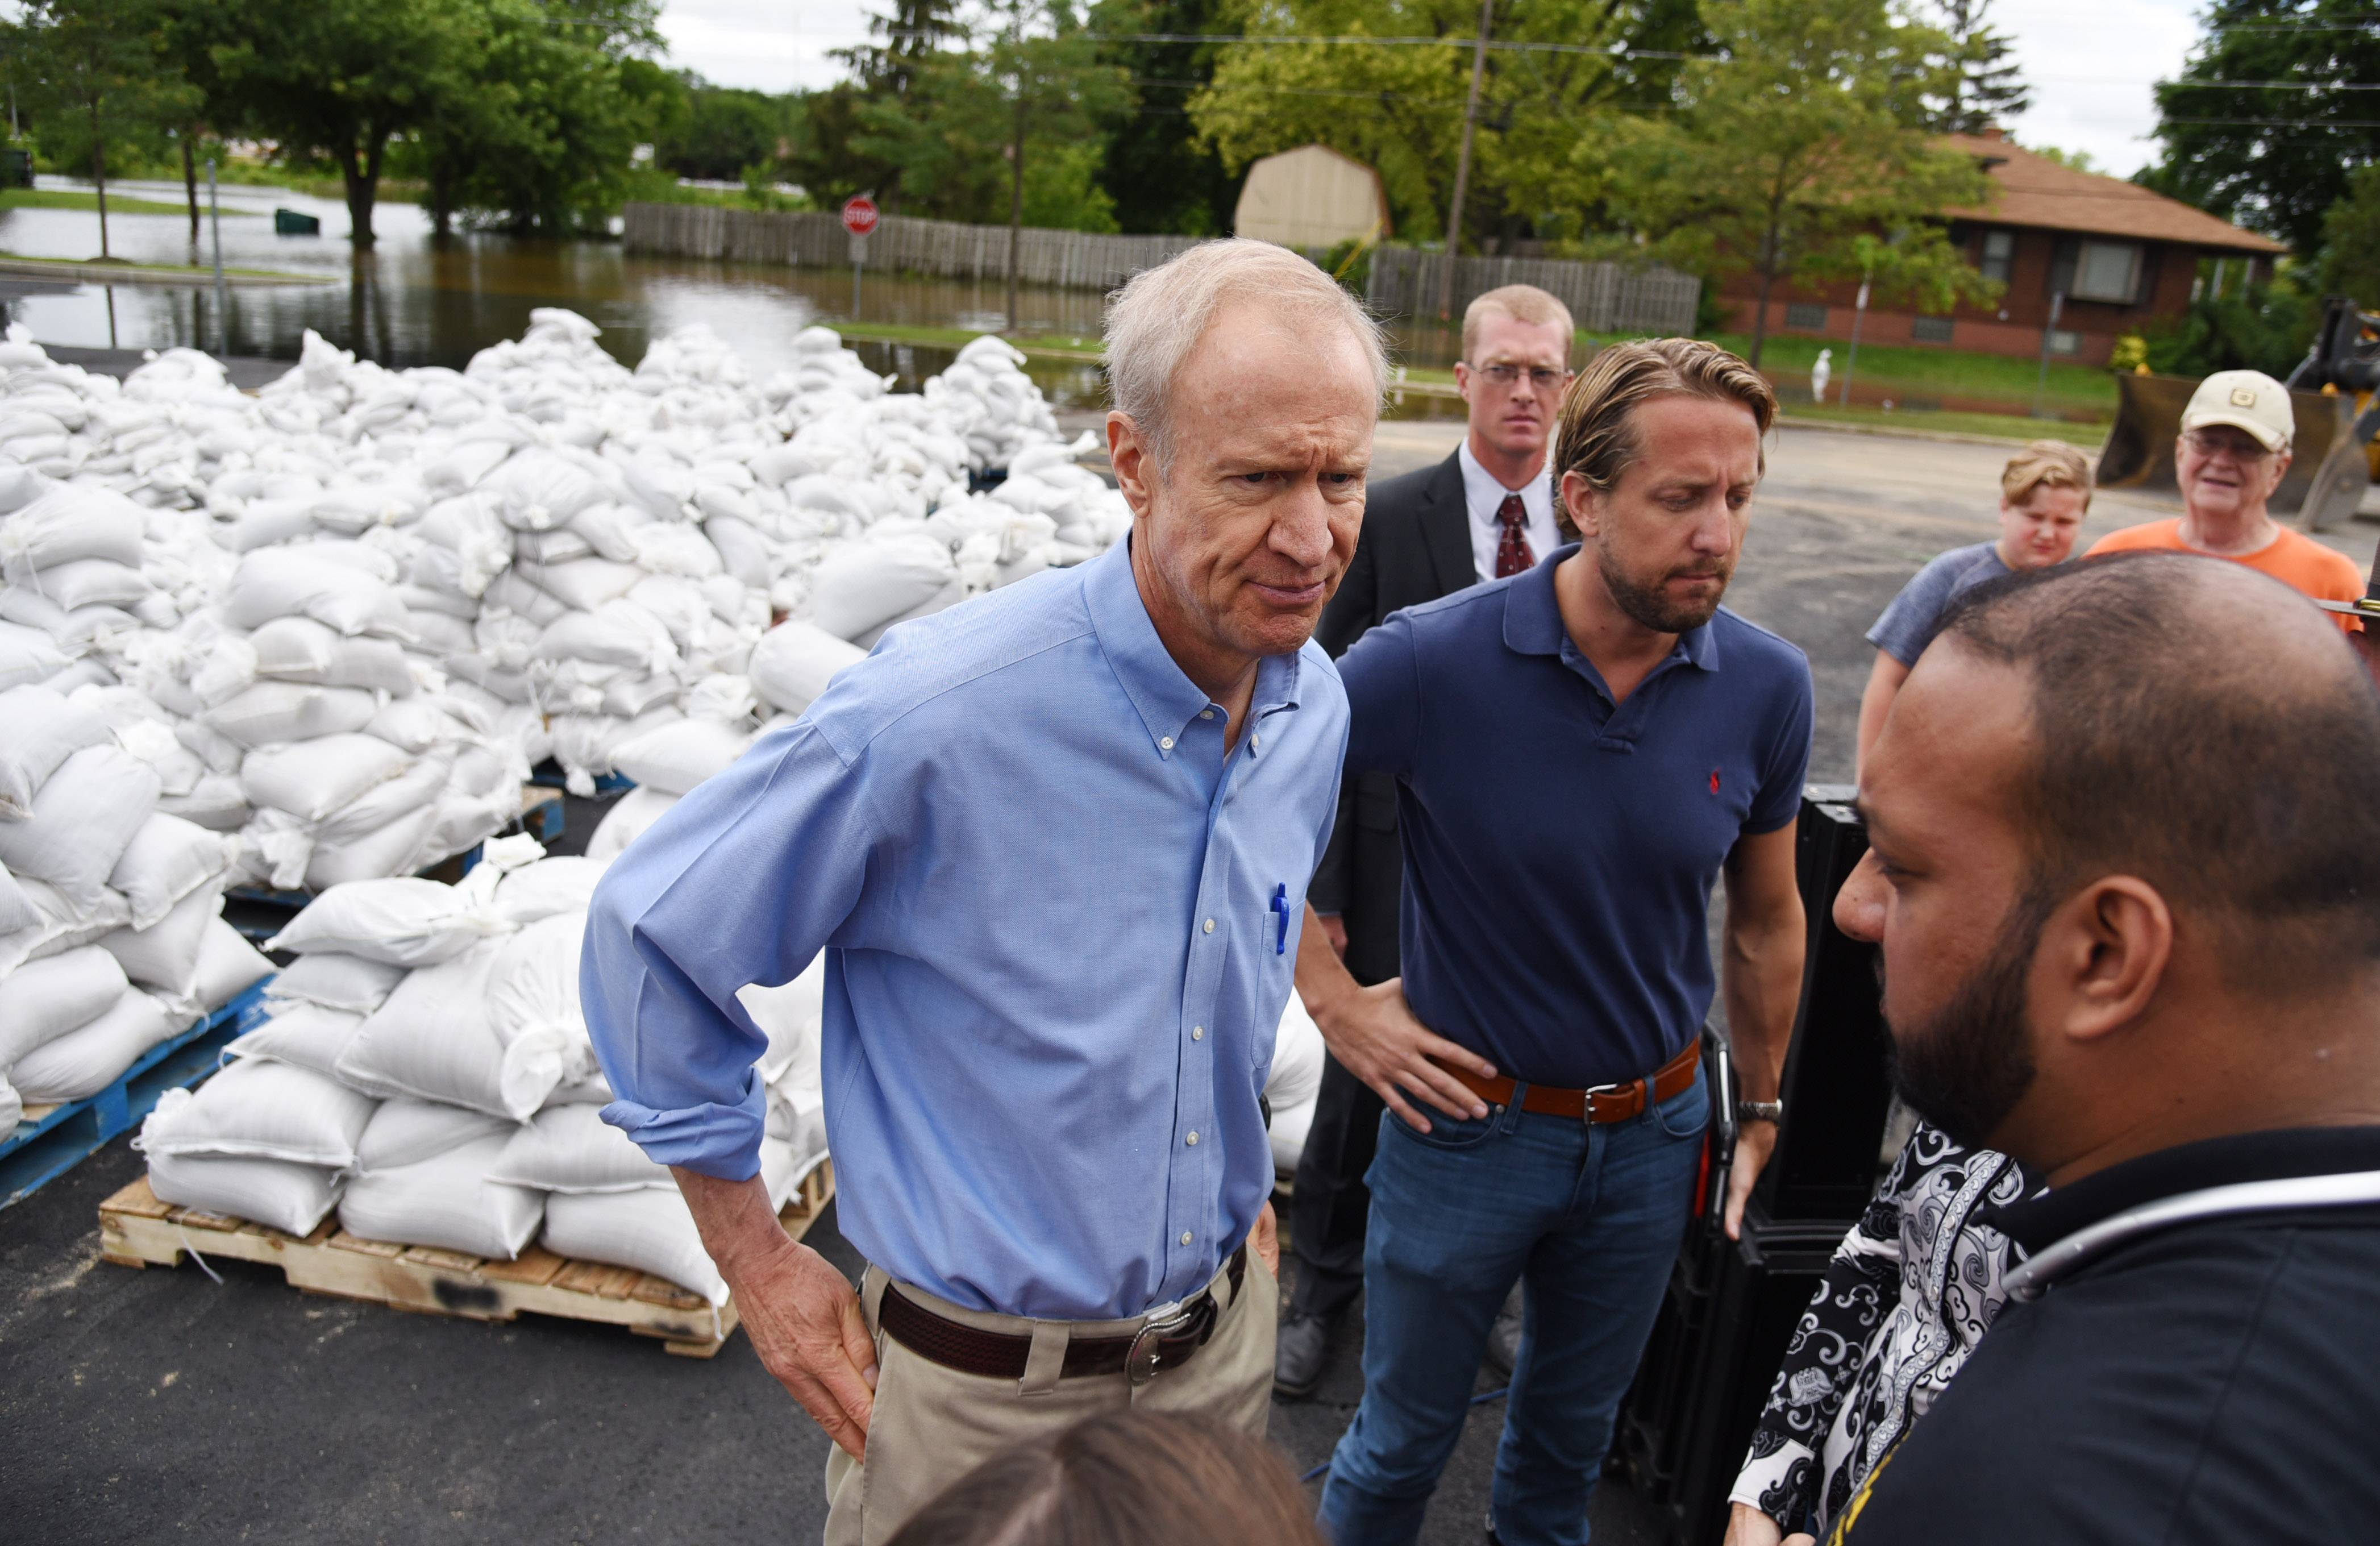 Gov. Bruce Rauner, left, pauses near hundreds of sandbags and the flooded McClure Avenue, back left, with Lake County Board Chairman Aaron Lawlor and IEMA Director James Joseph, right, Friday during a stop in Gurnee to survey flood damage.